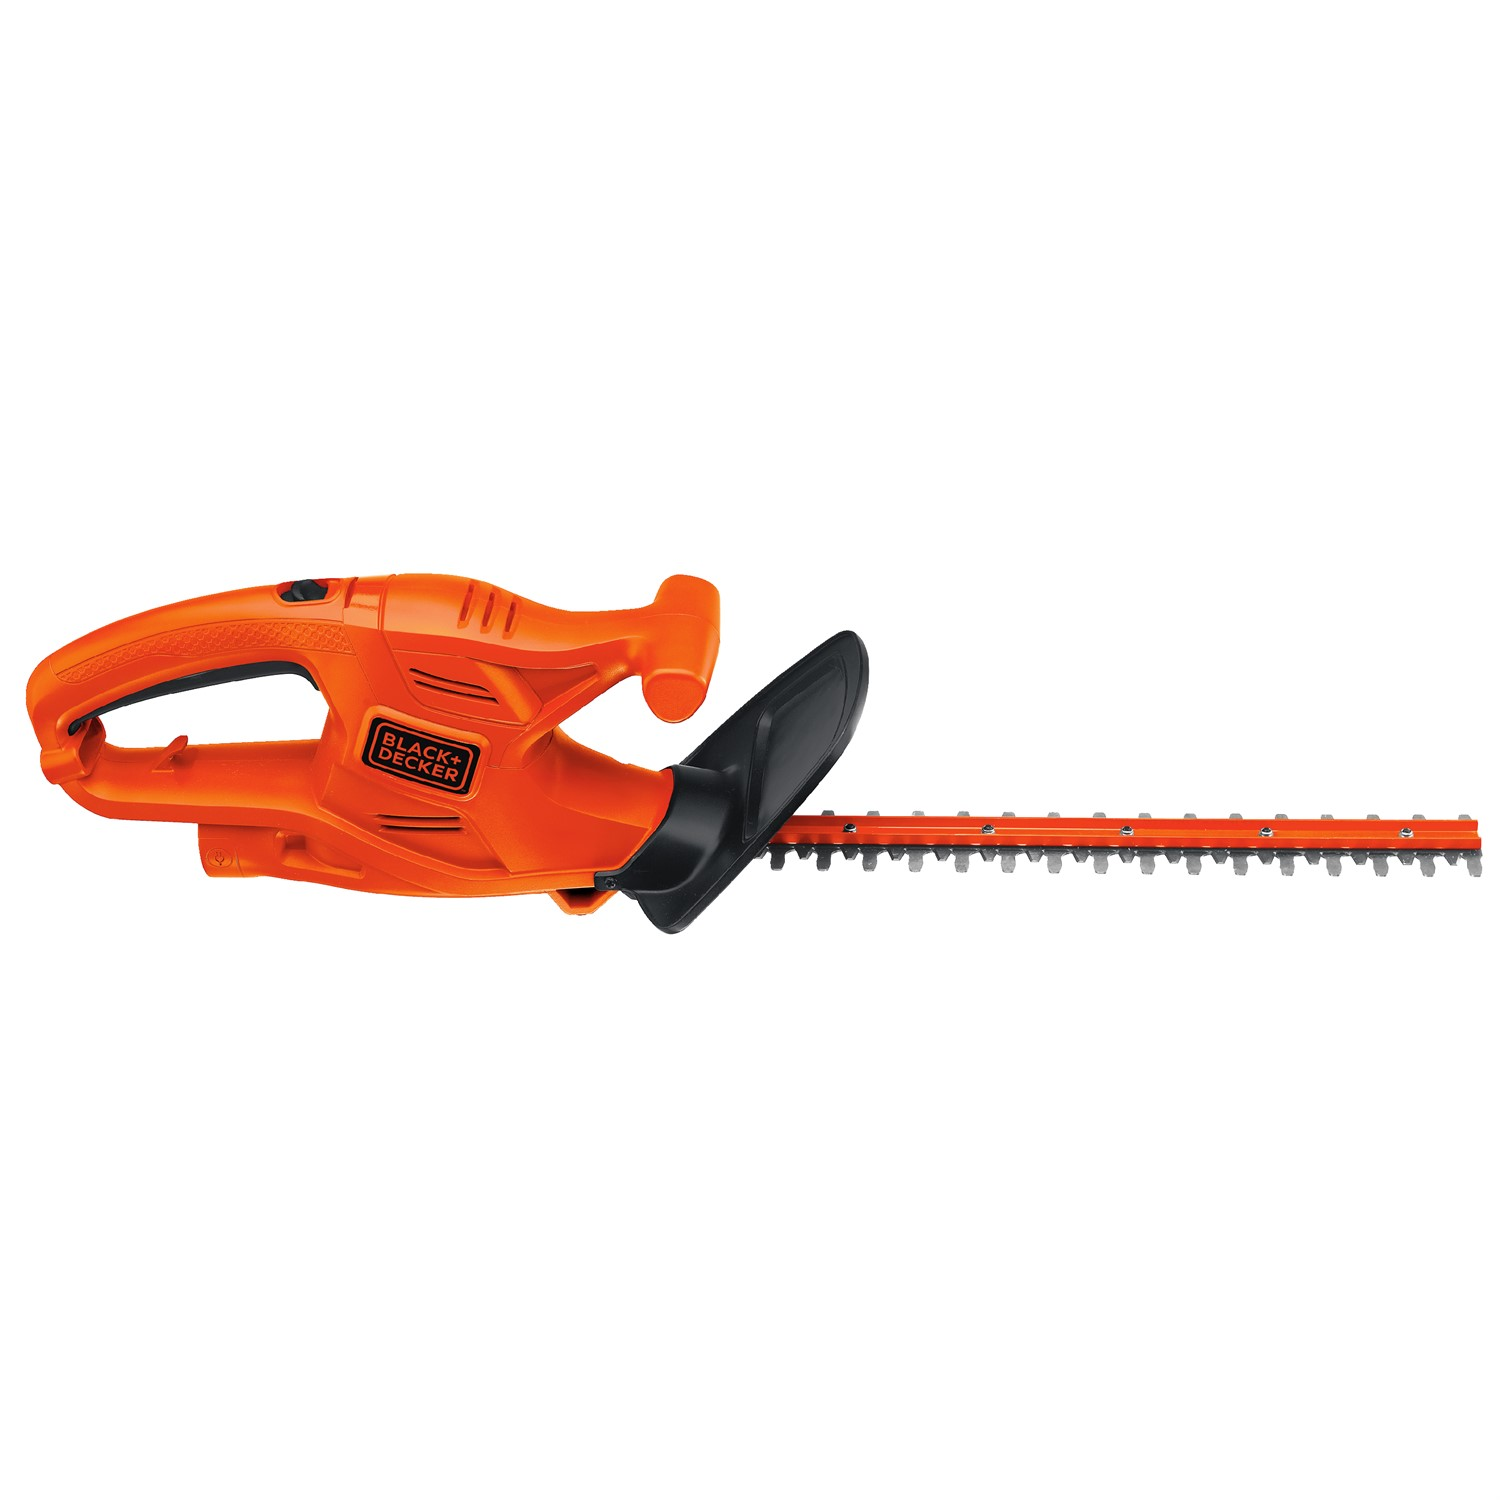 "Black & Decker TR116 16"" 3 Amp Electric Hedge Trimmer by Hedge Trimmers"